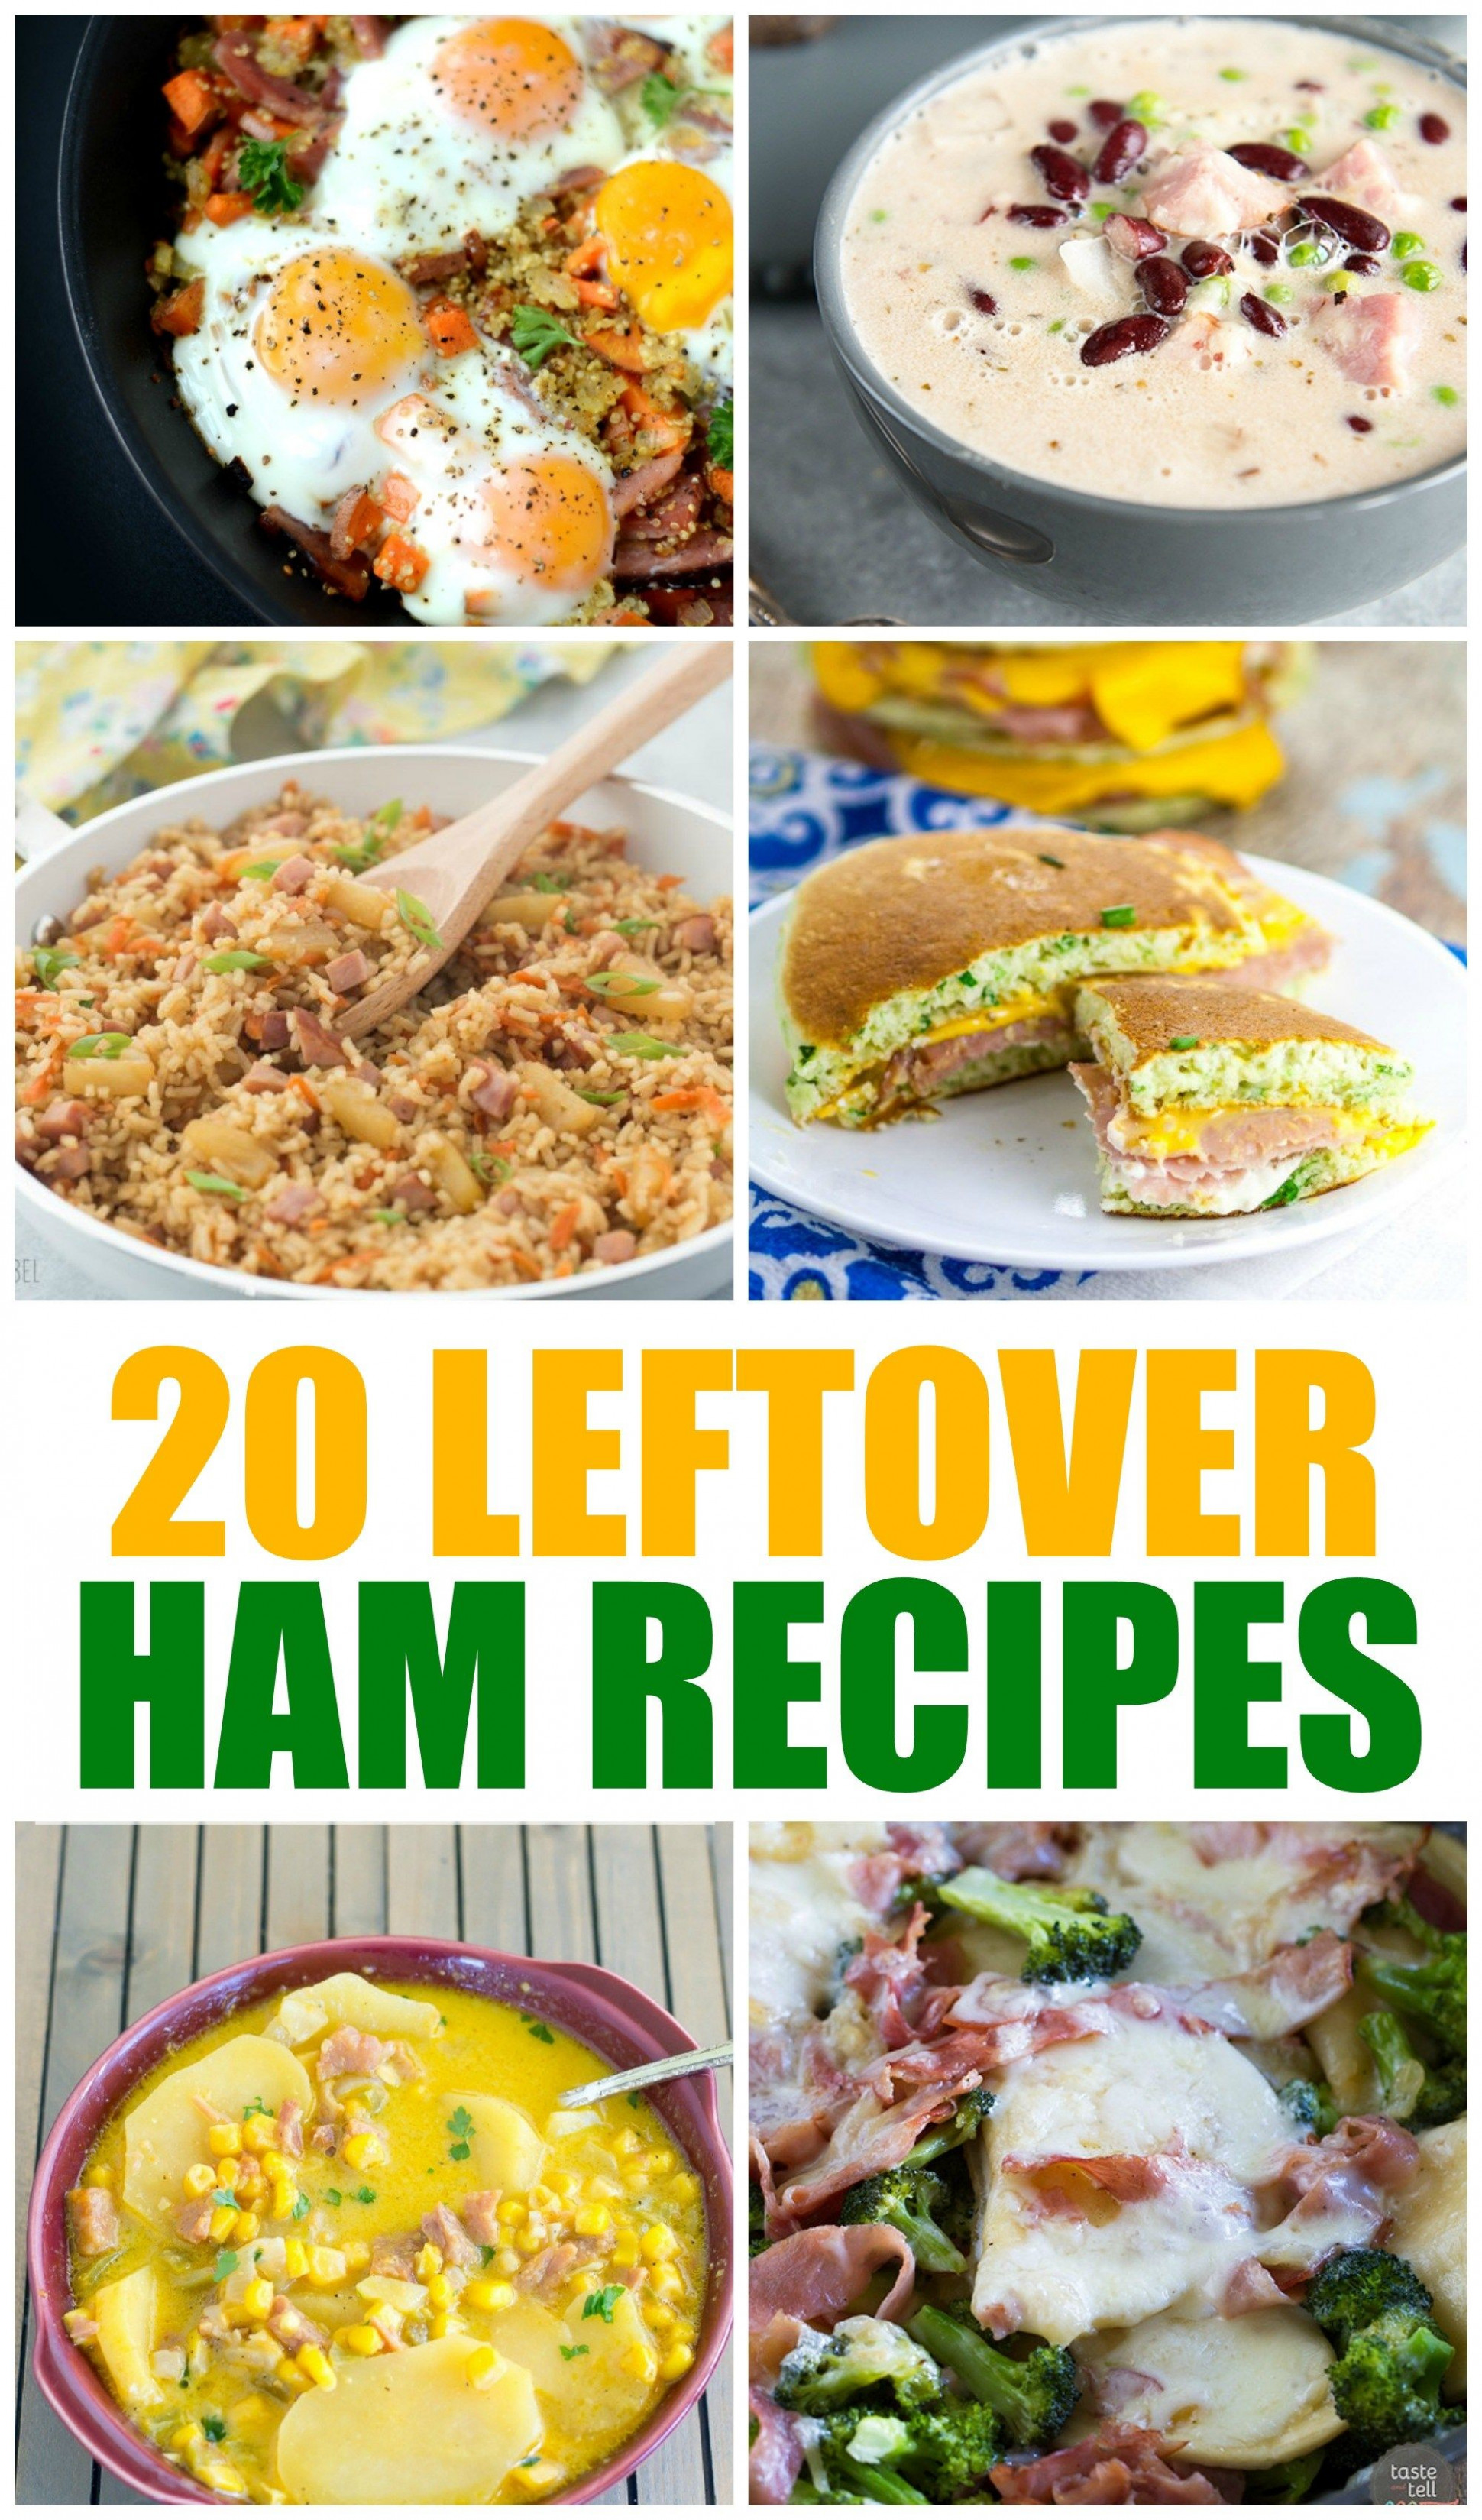 20 Leftover Ham Recipes | Momma Lew | Pinterest | Leftover ...